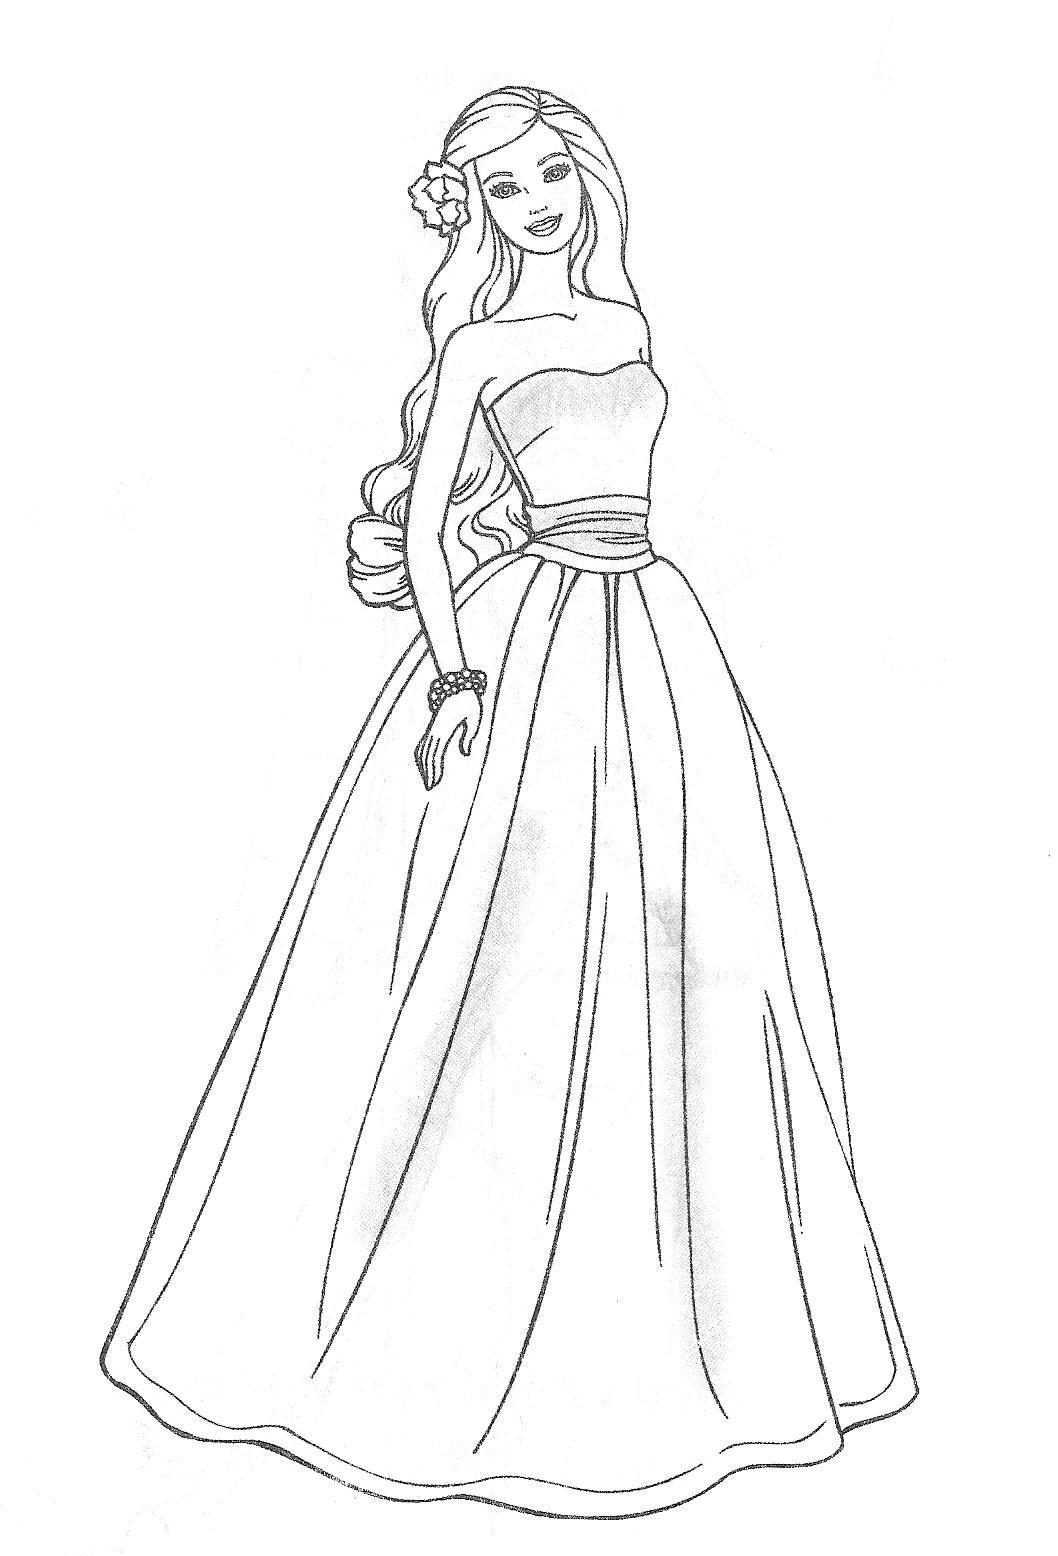 barbie doll coloring pages 20 barbie coloring pages doc pdf png jpeg eps barbie pages doll coloring